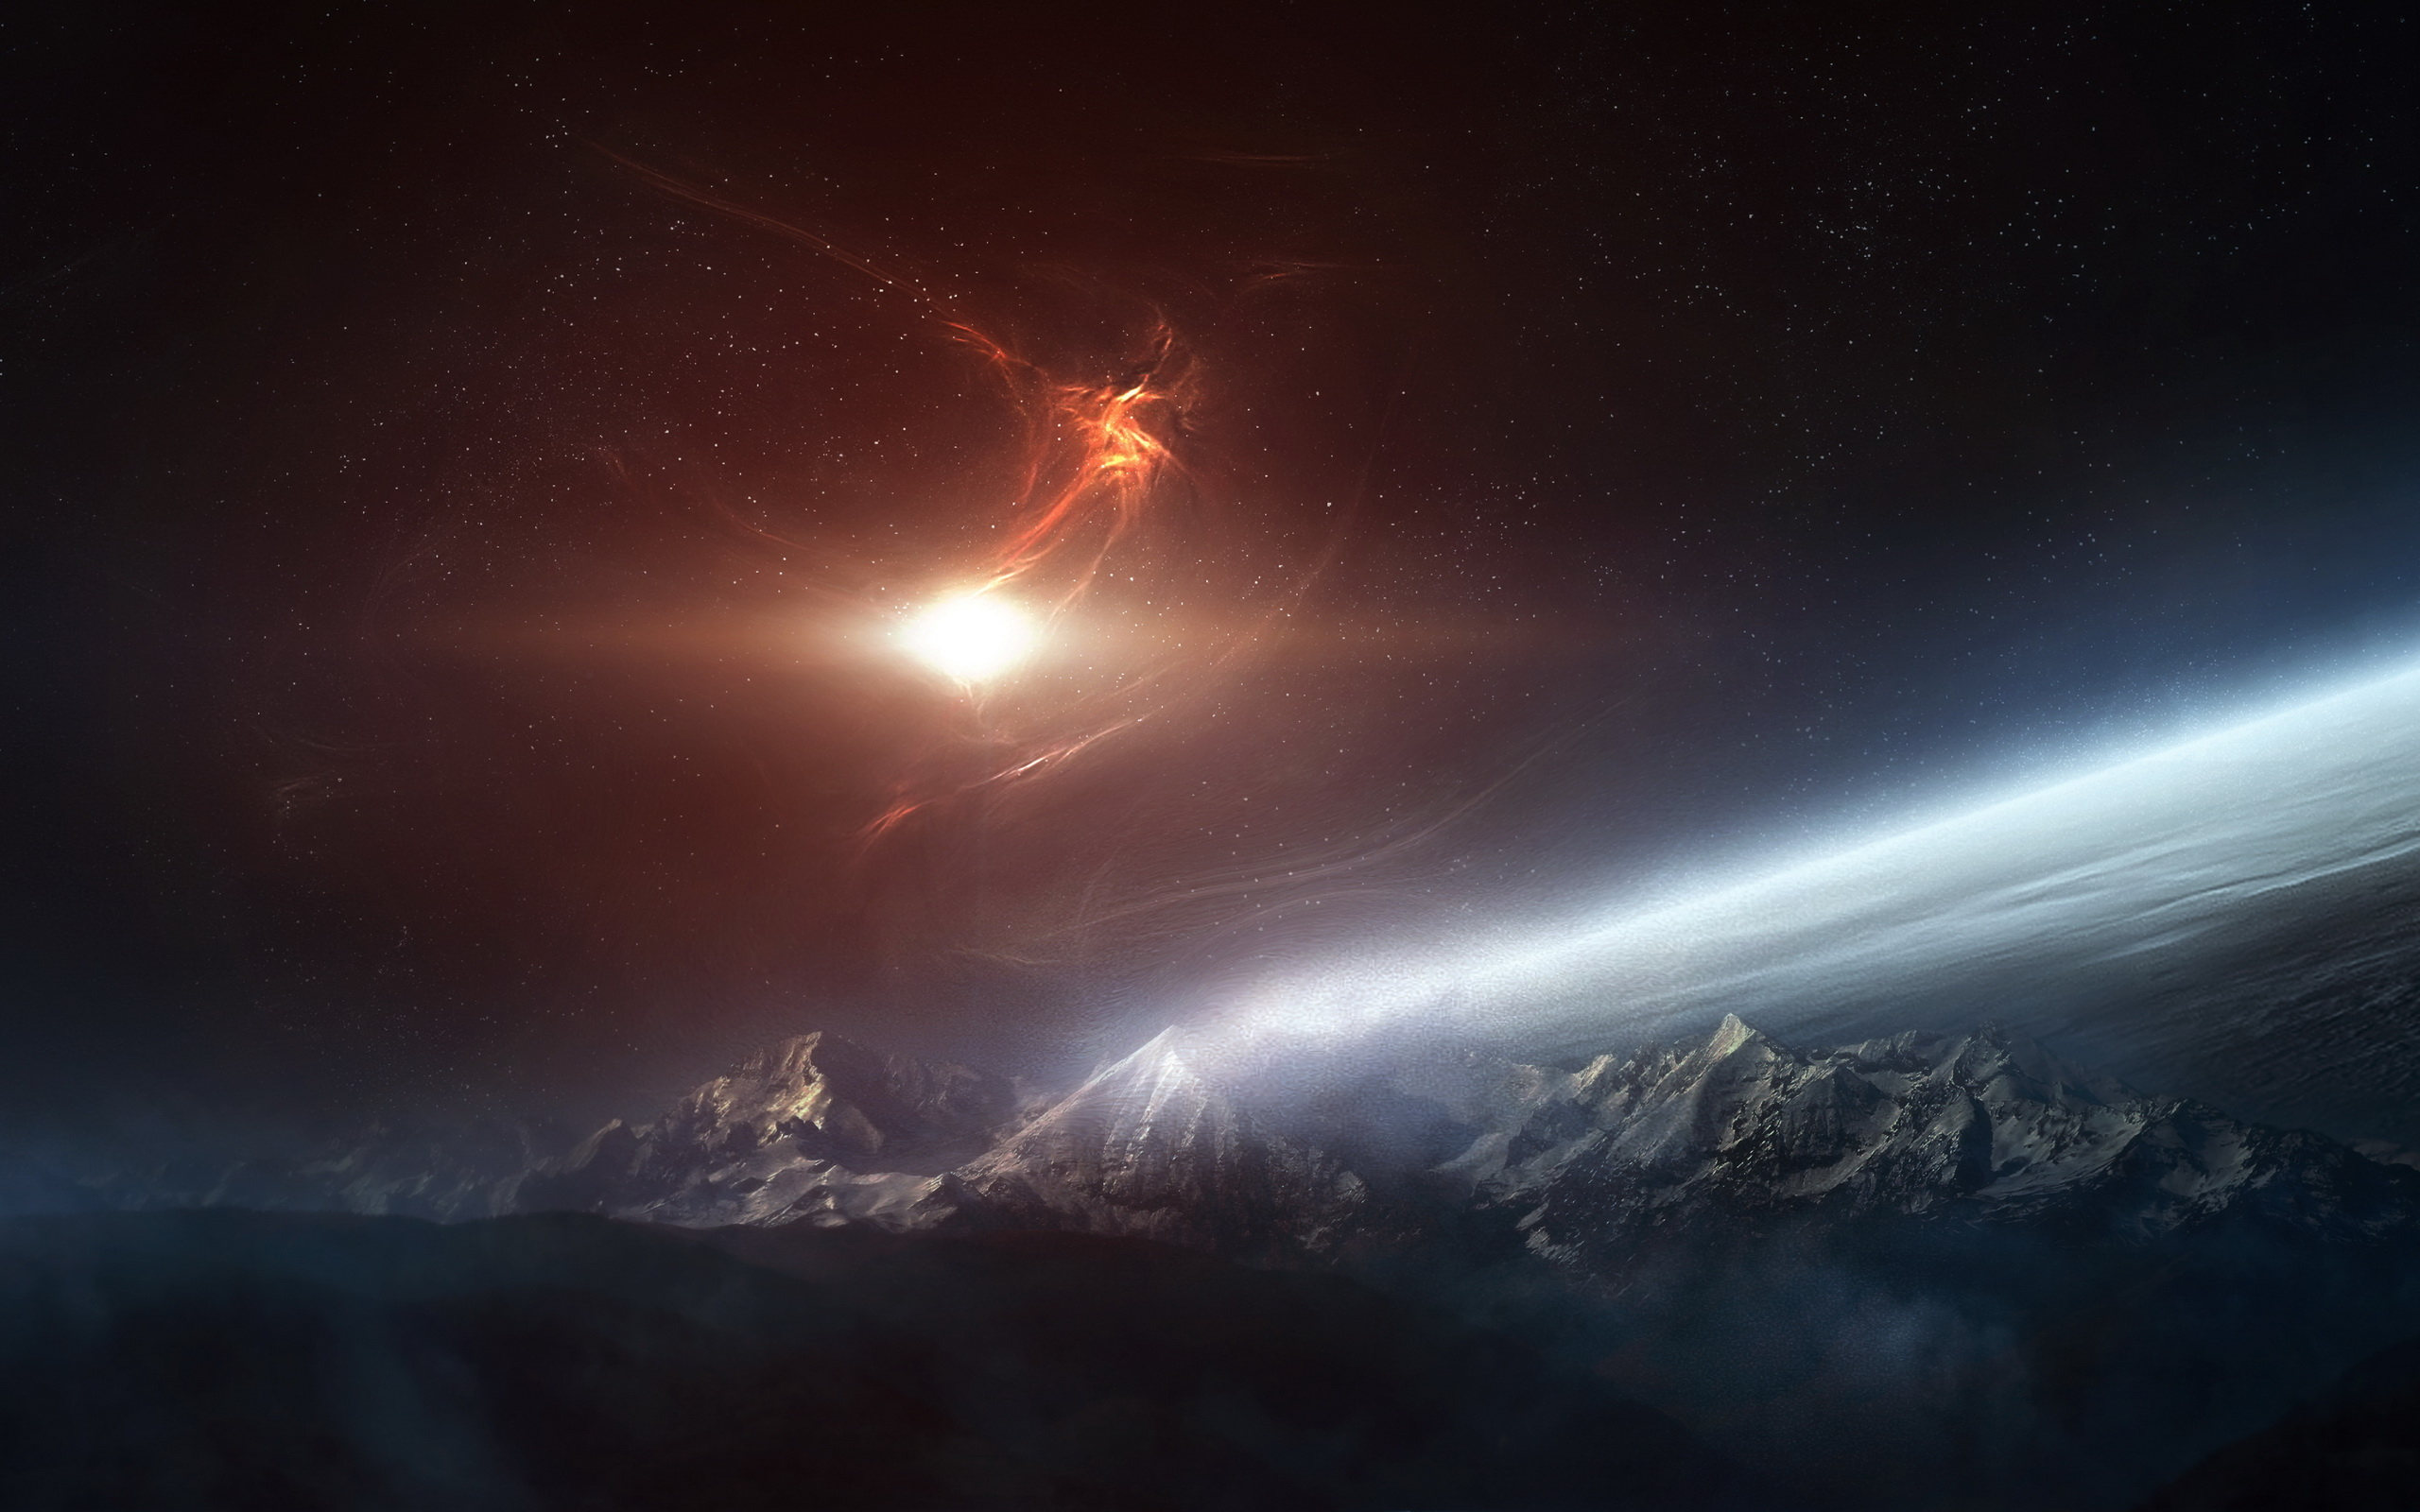 original wallpaper download: Atmosphere of the planet - 2560x1600